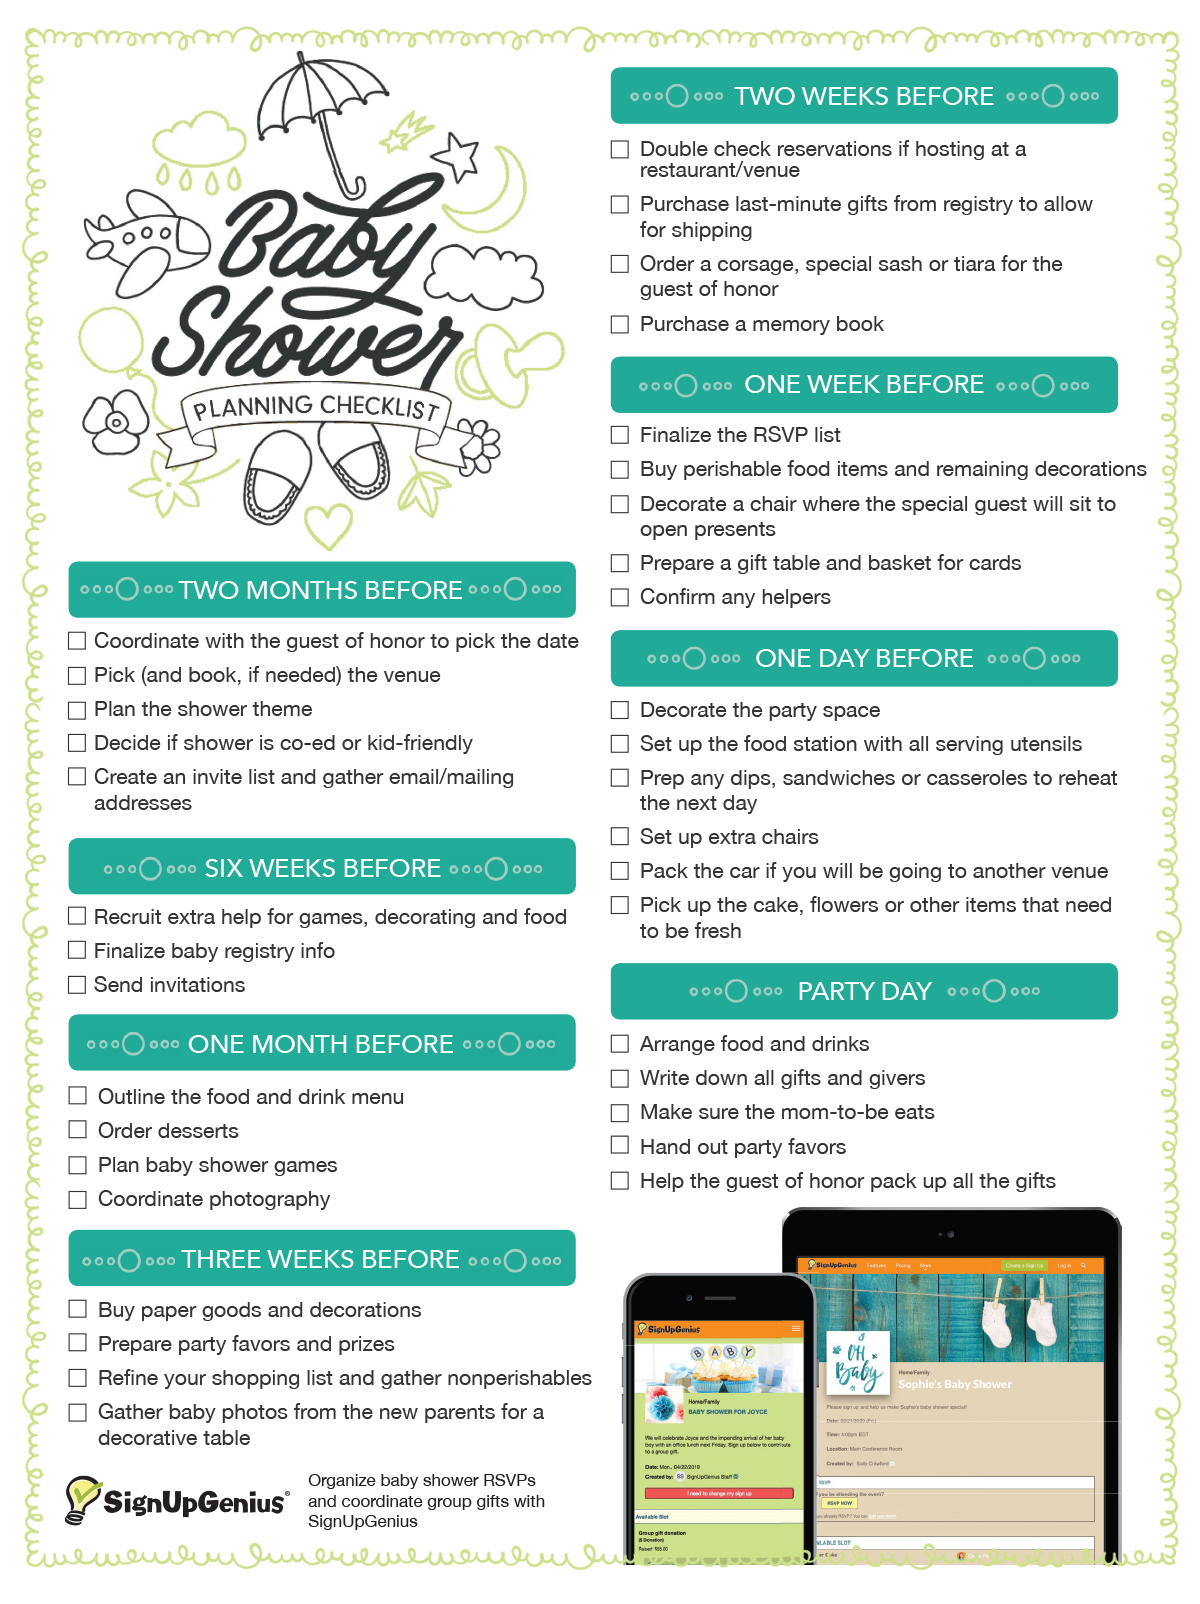 Baby Shower Planning Checklist. Get this printable checklist that walks you  through a timeline and ideas for planning a creative baby shower.